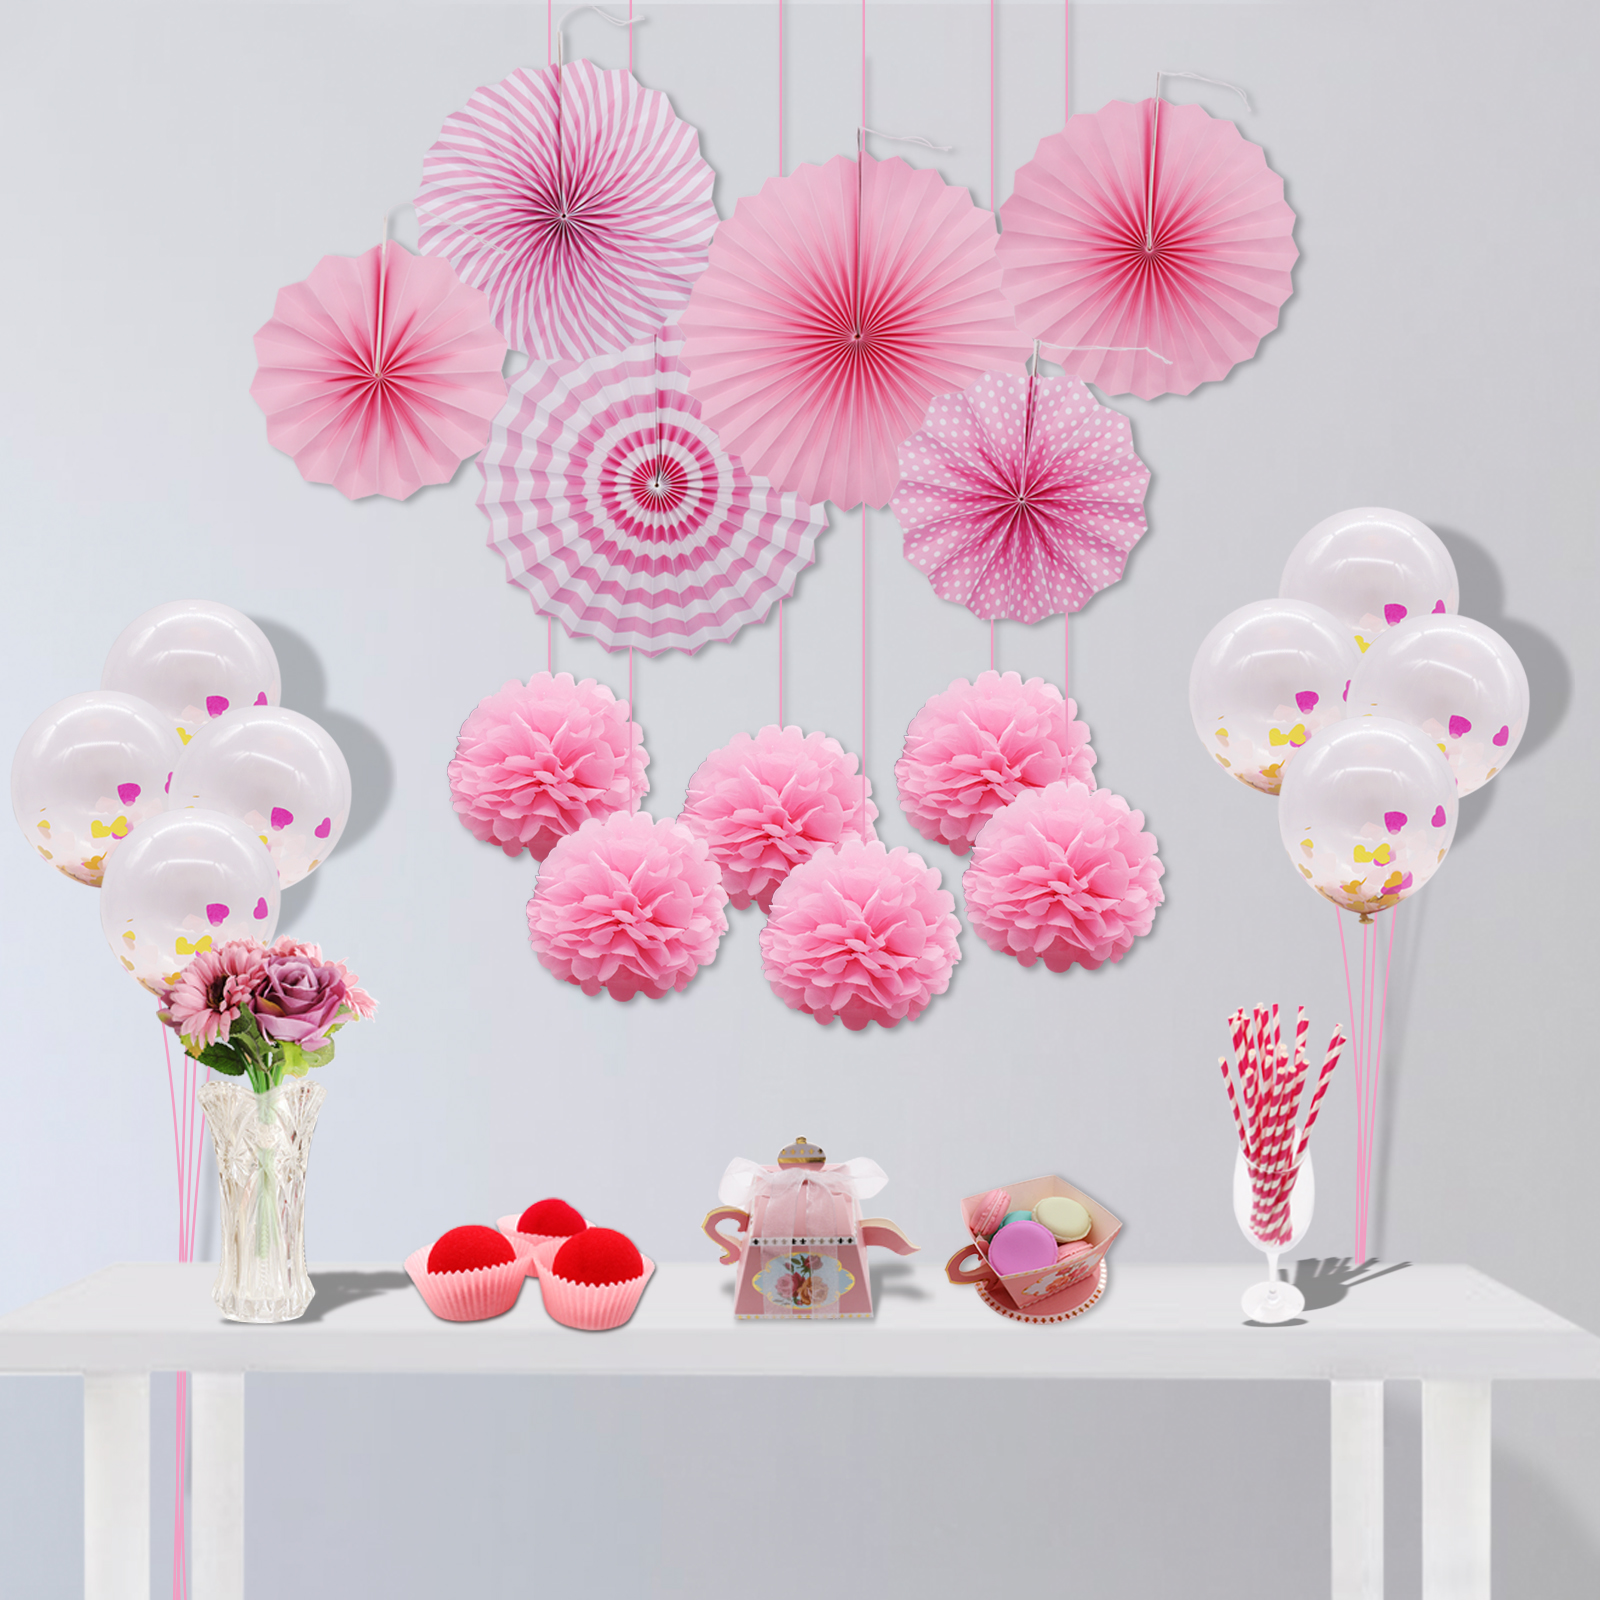 8 inch 20 cm Round Paper Lanterns Lamp Shade Wedding Party Christmas ...